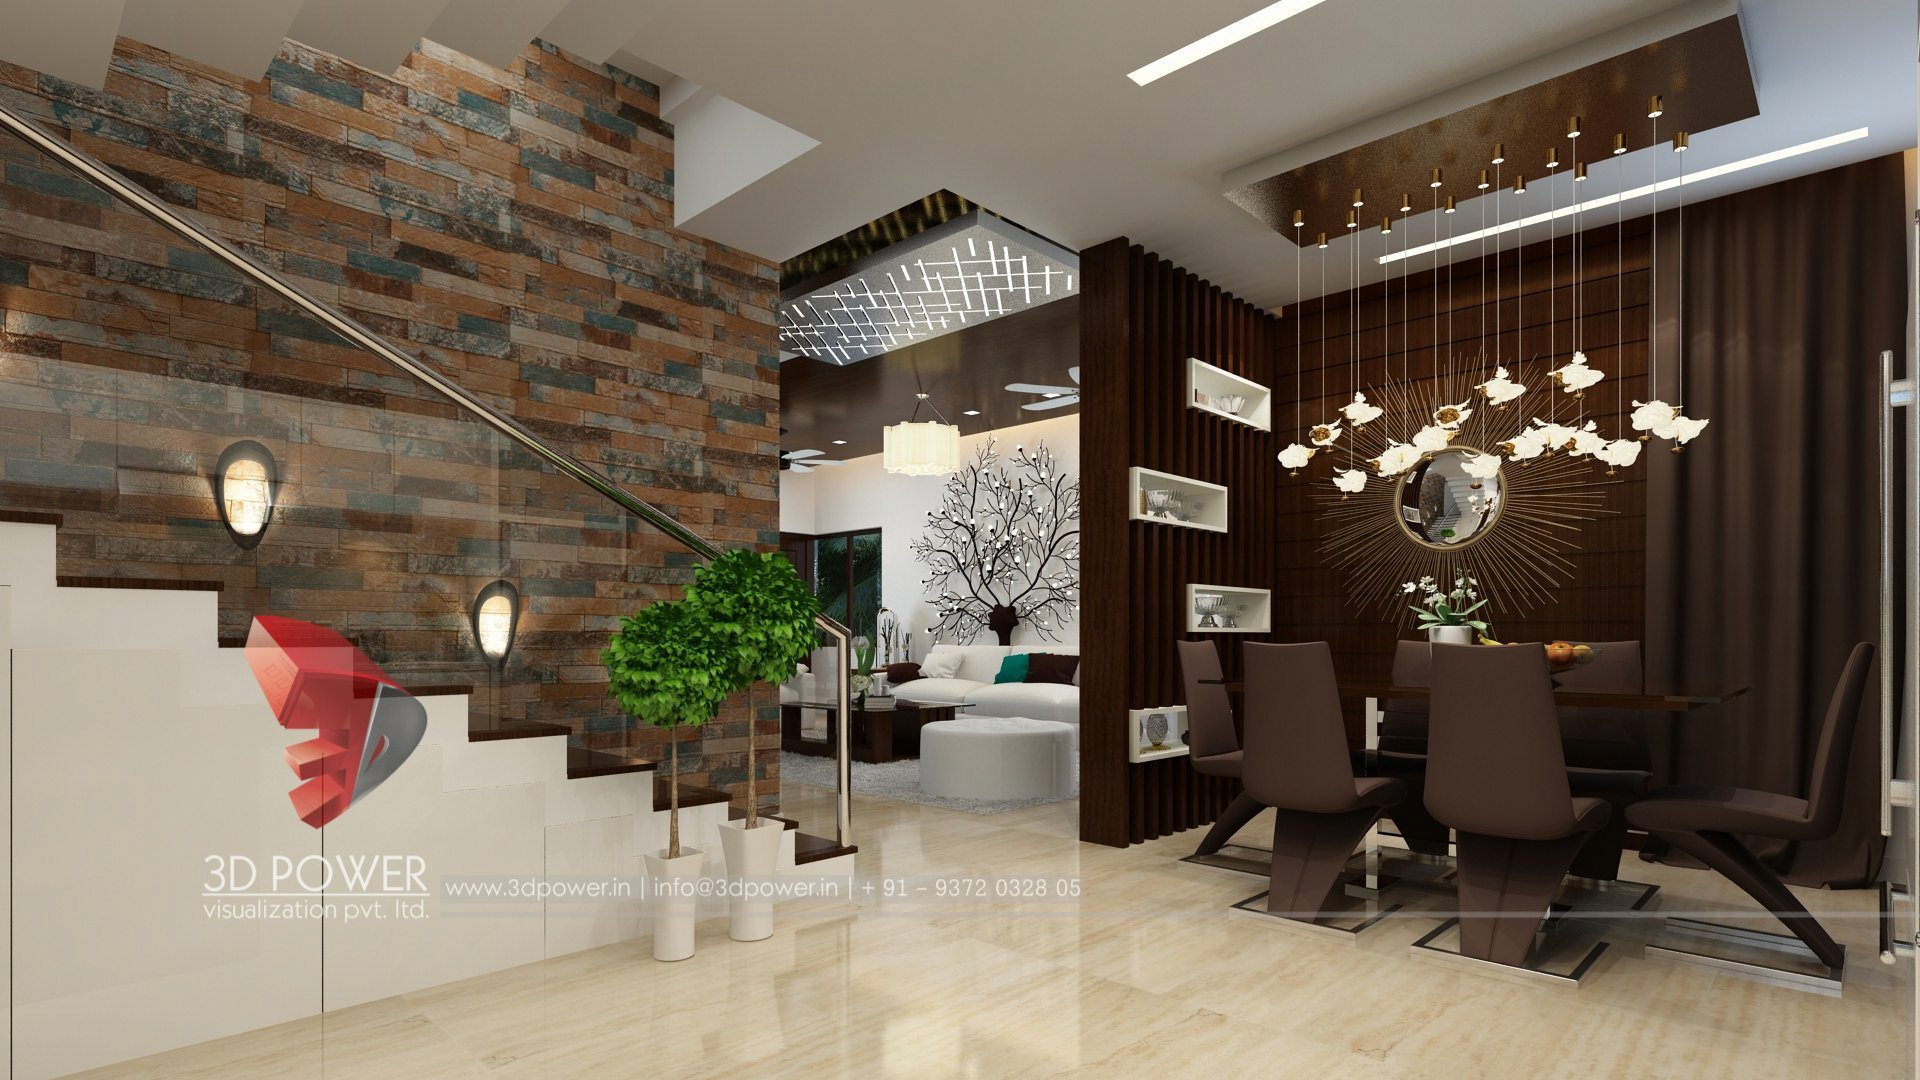 3d interior design rendering services bungalow home - Interior living room design ideas ...